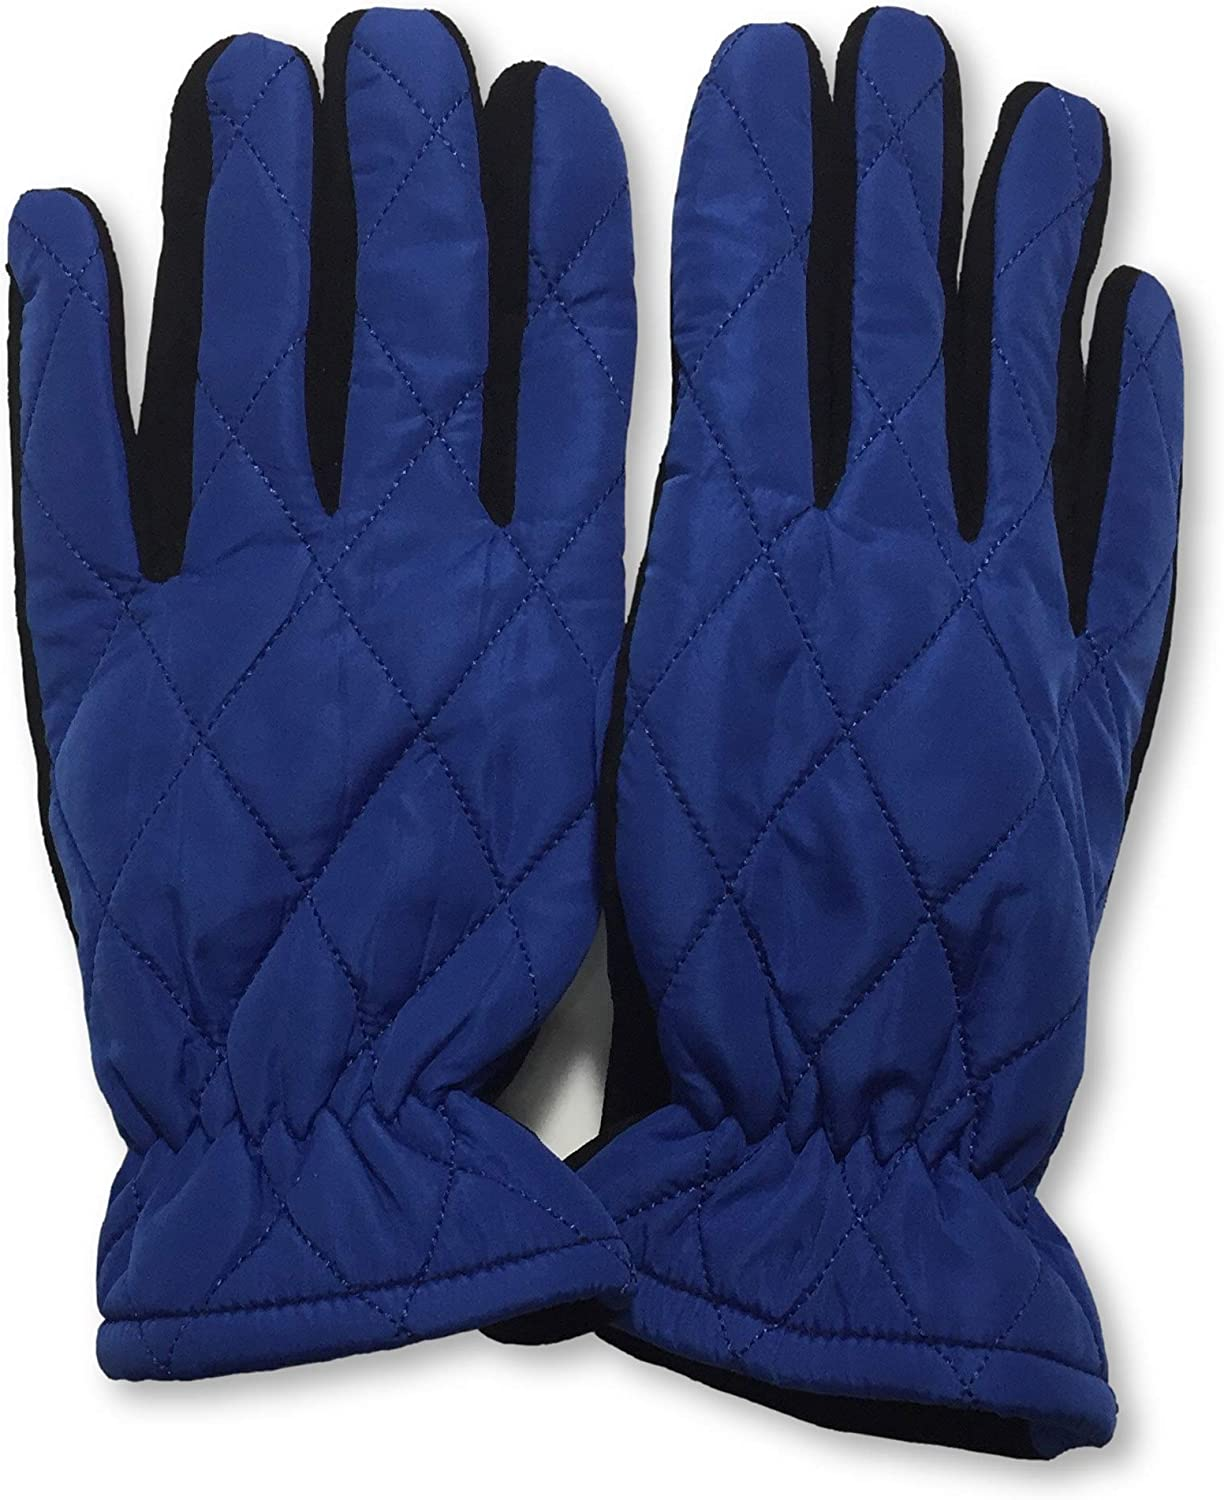 Quilted Leather Suede Palm Adult pair 1 Men's Limited price sale Gloves- Challenge the lowest price of Japan ☆